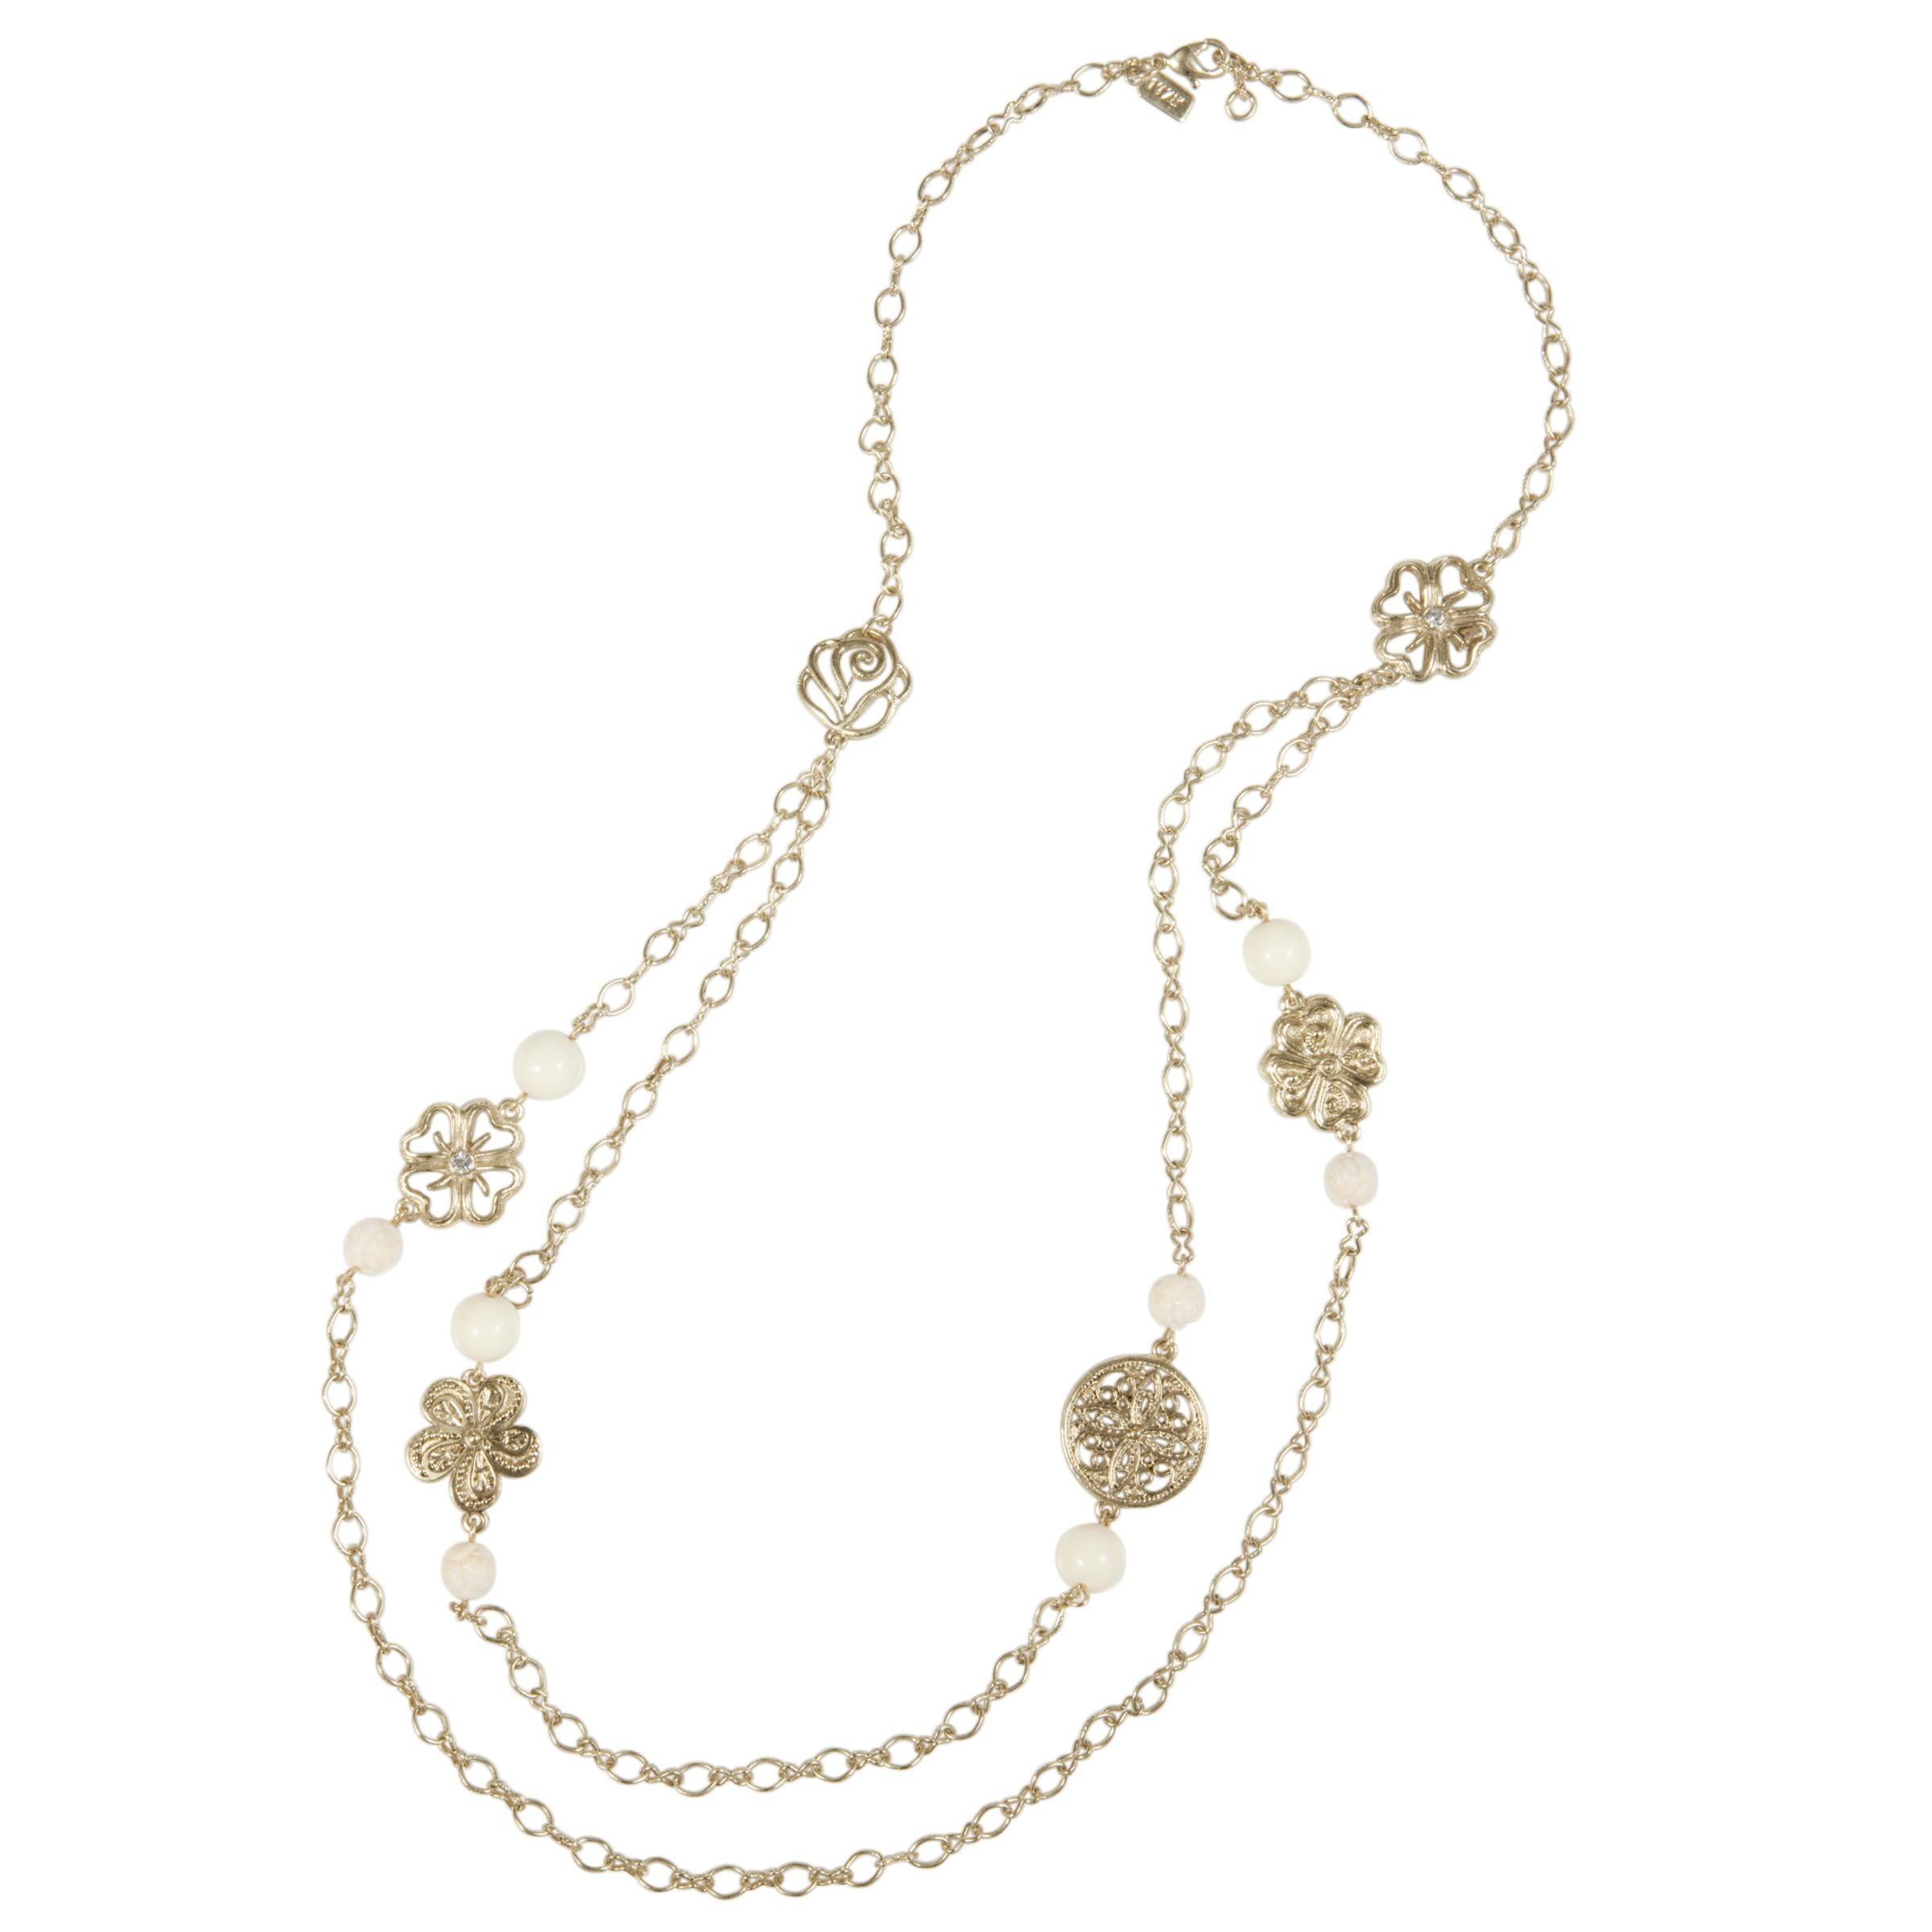 1928 New York Newport Beach Vintage Double Chain Necklace